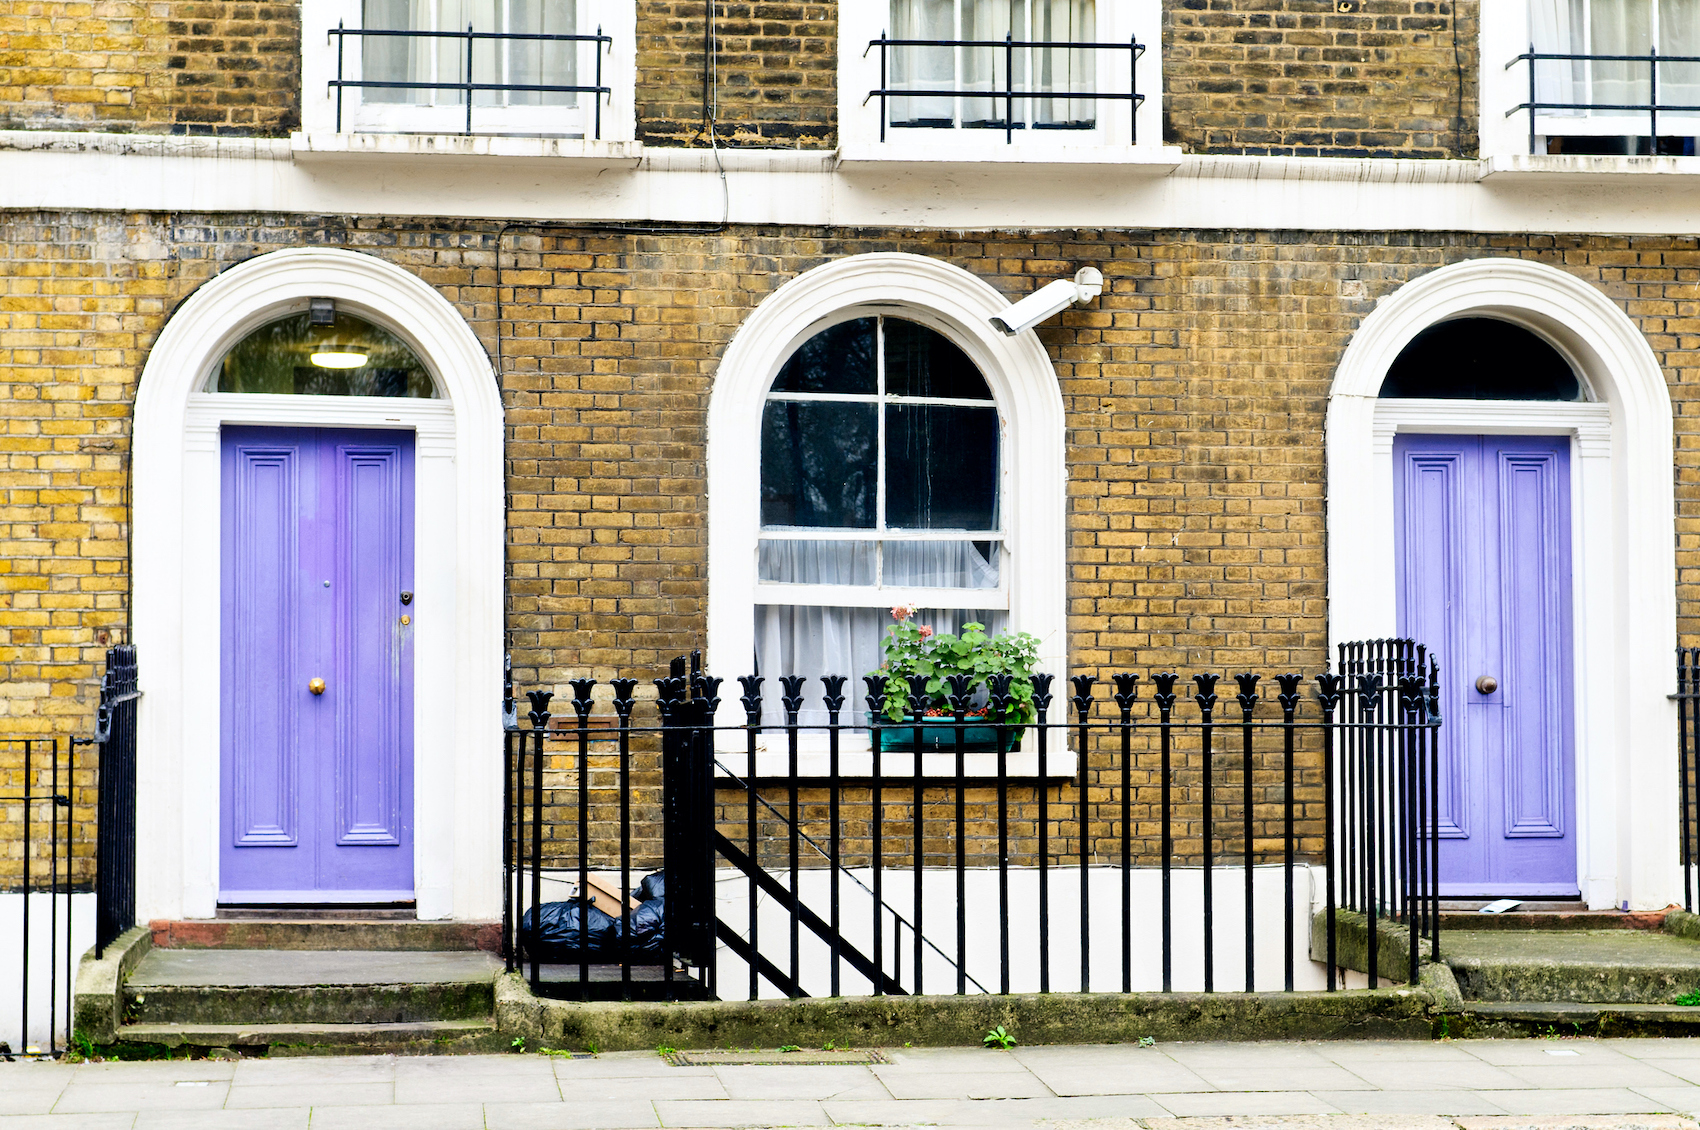 Ninth is #9 California Lilac 2068-40 Benjamin Moore. In the picture the door is surrounded by white trim and brick walls. Moreover the purple color is light purple with a touch of pink.